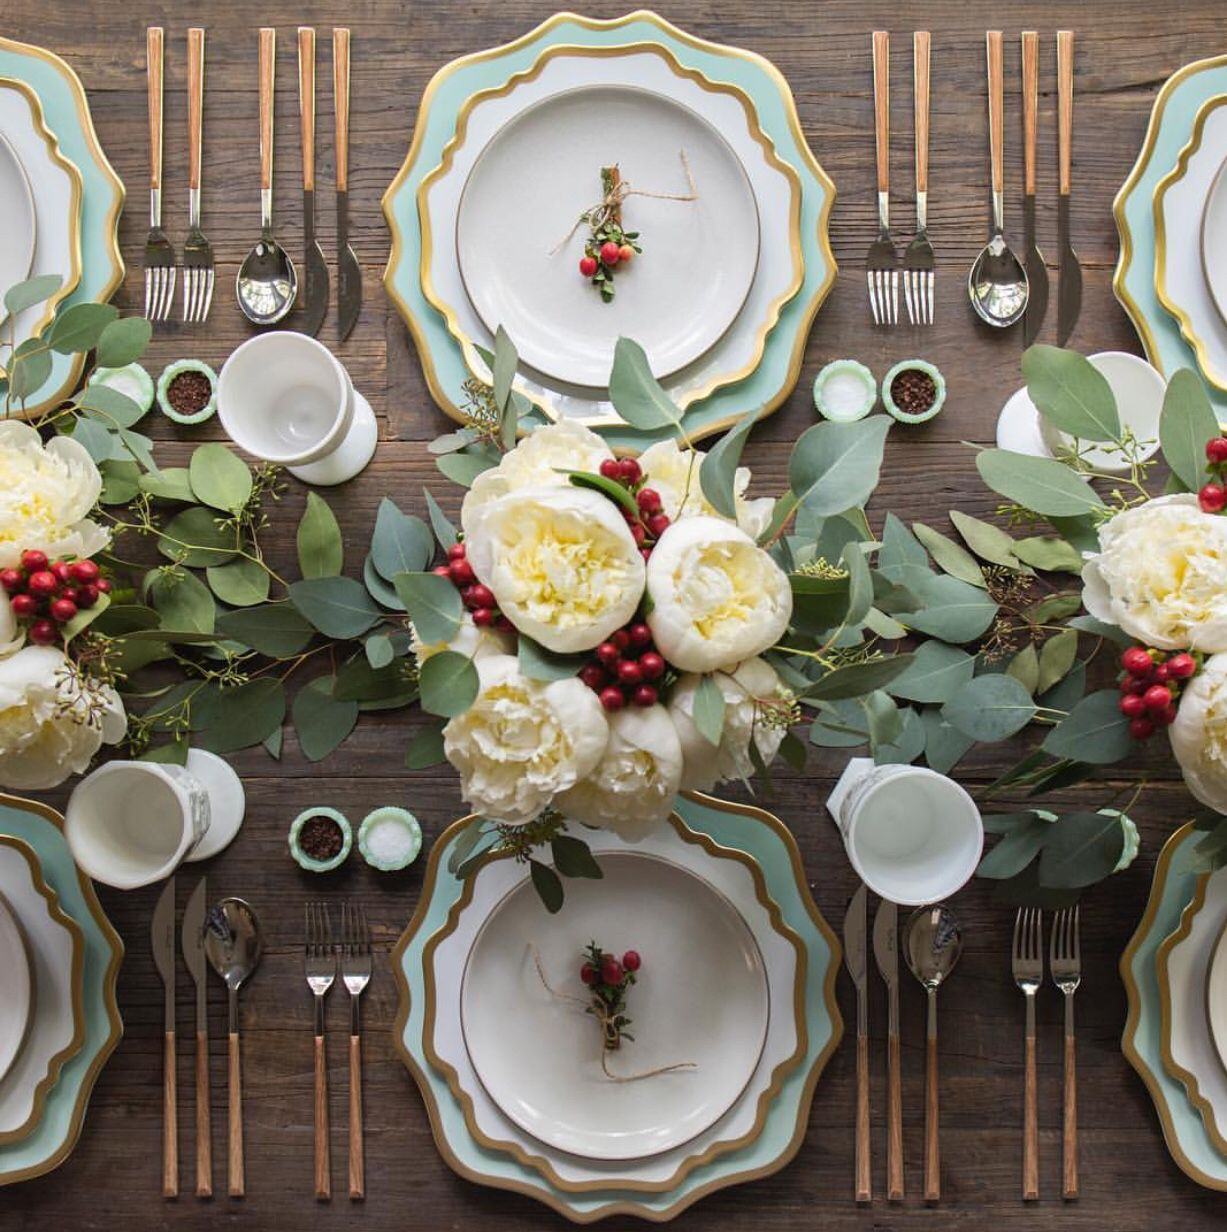 Instagram @casadeperrin & 25 Elegant Christmas Table Settings - Holiday Table Ideas u0026 Centerpieces